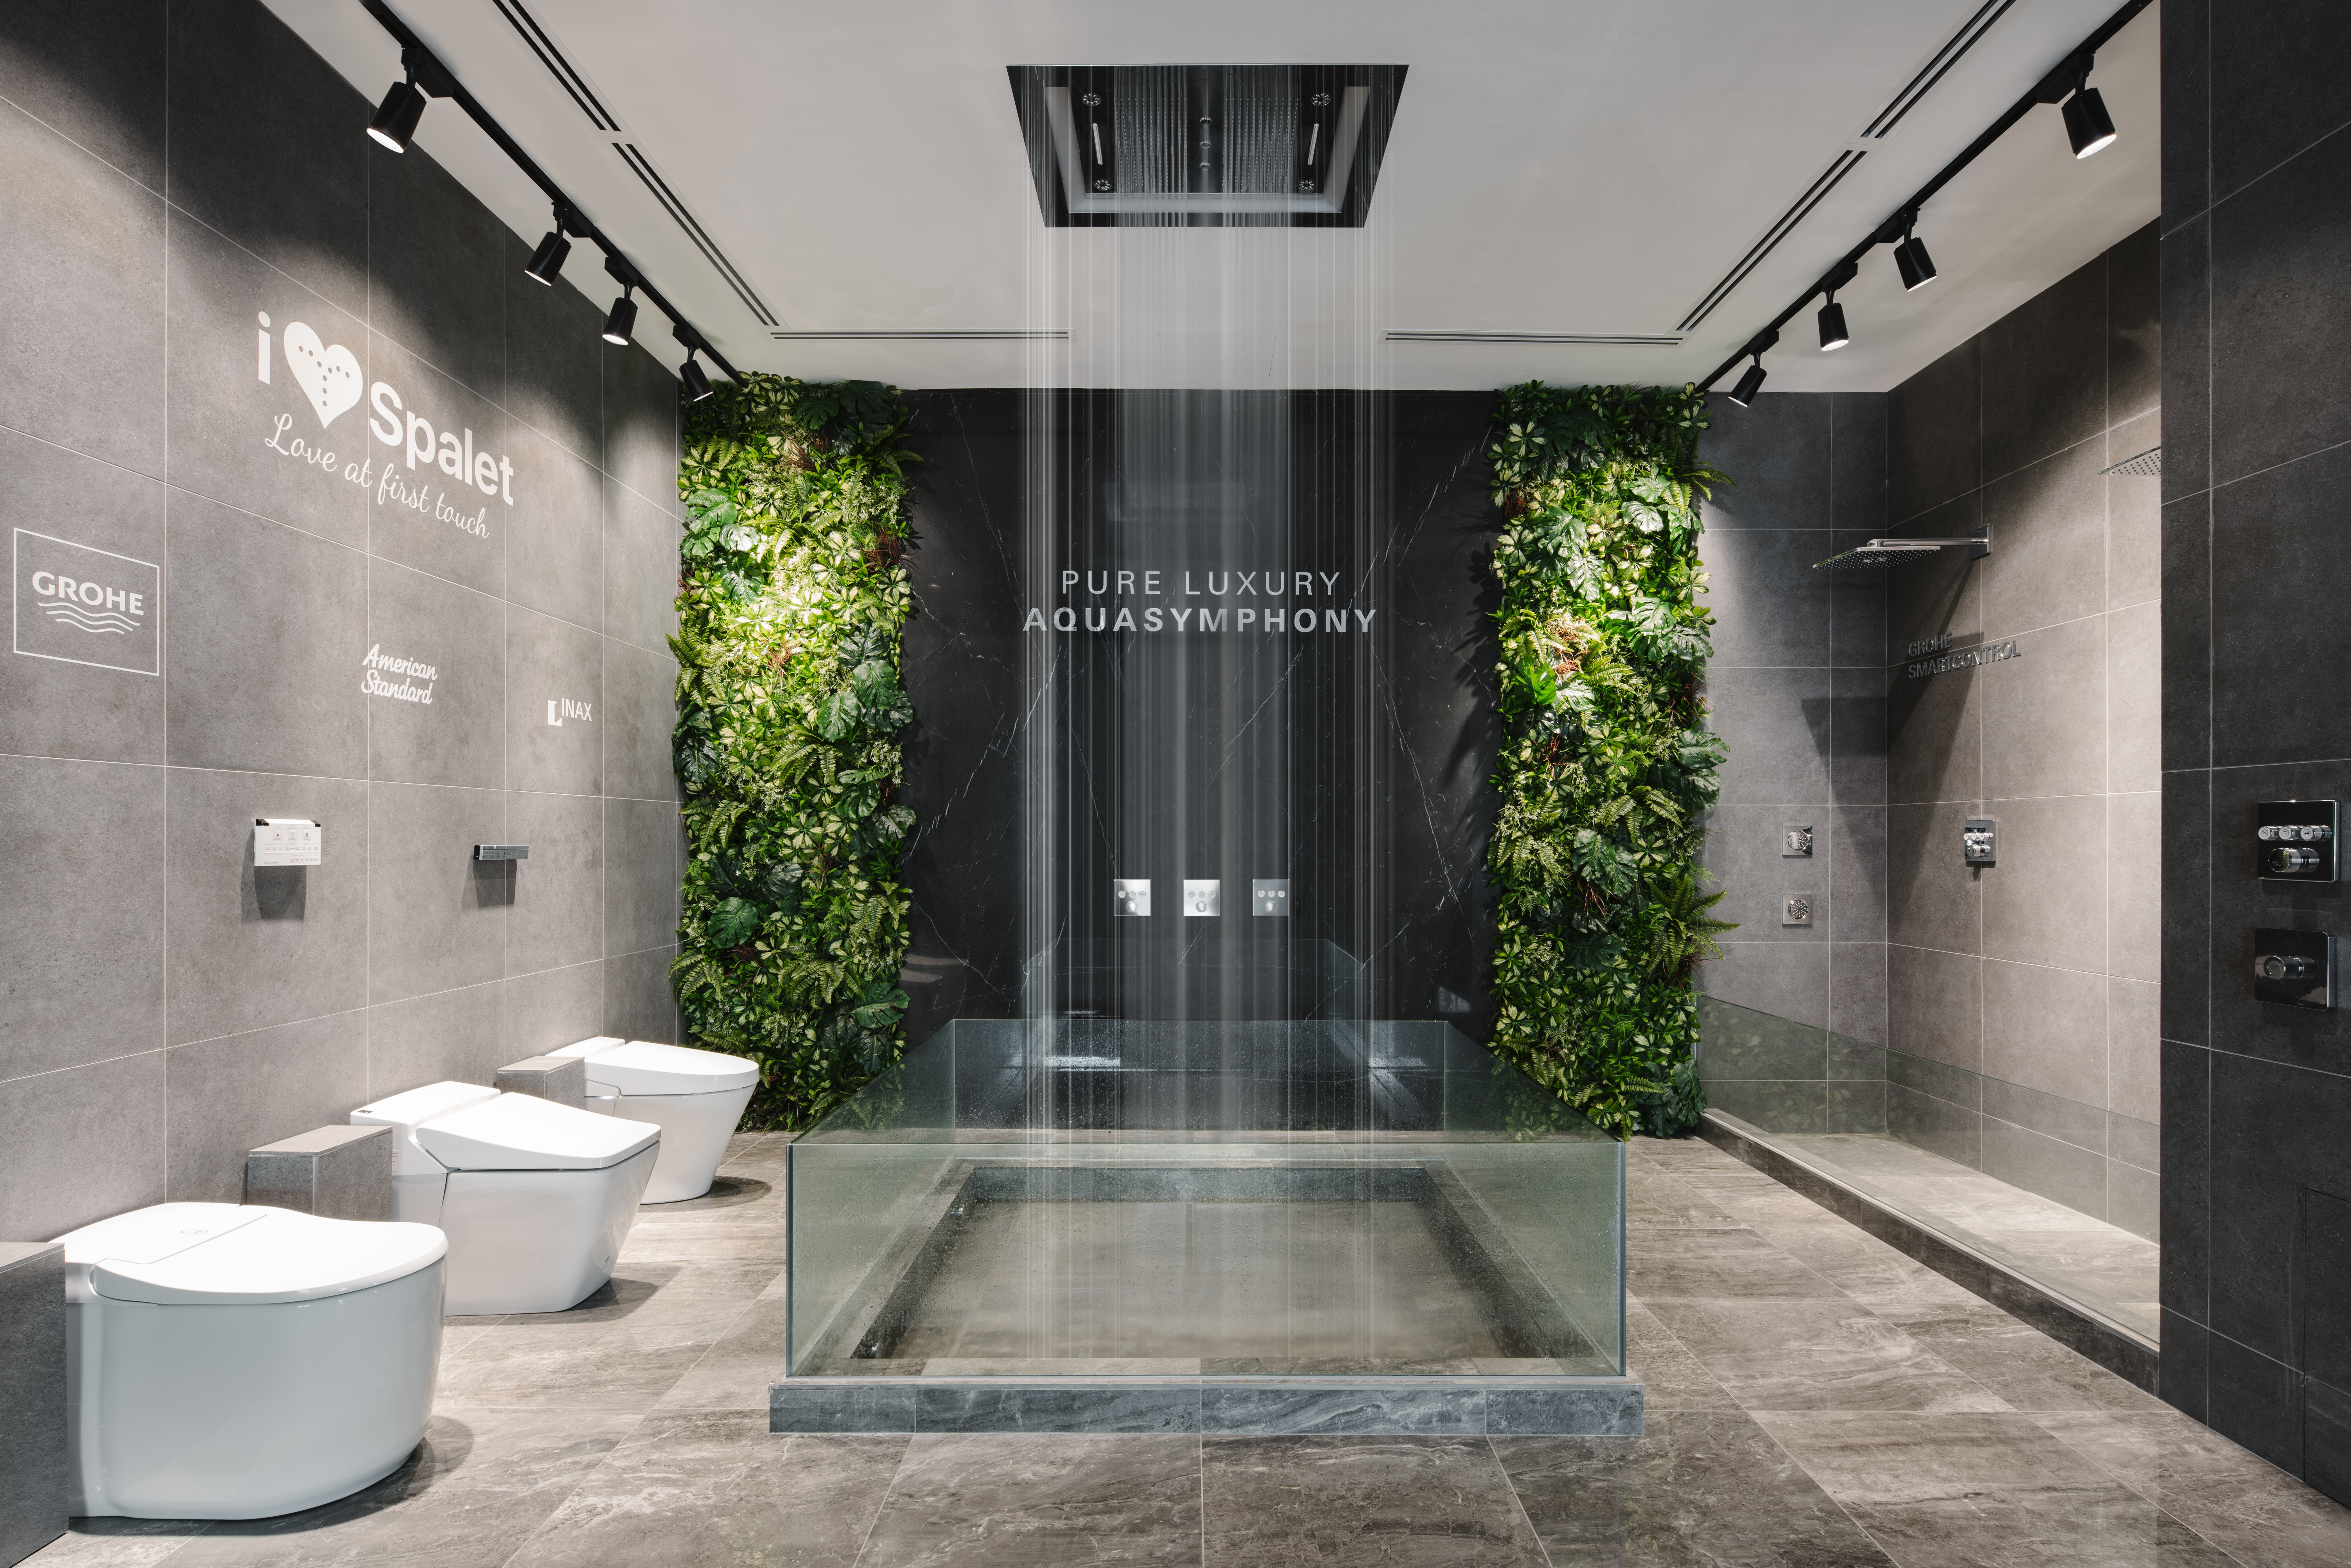 Grohe. Beautiful Amazing Grohe With Grohe With Grohe. Grohe Essence ...